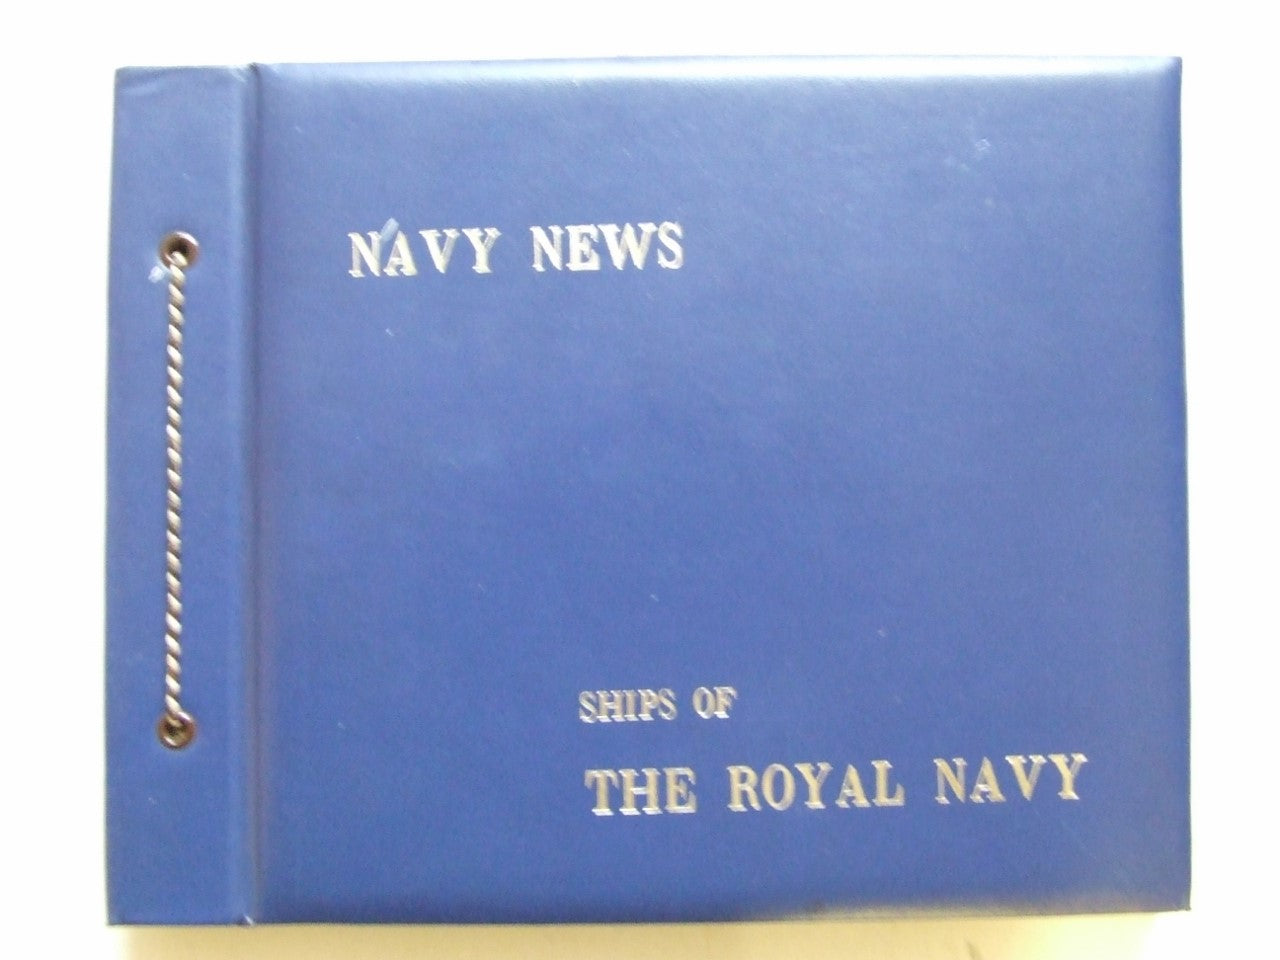 Ships of the Royal Navy